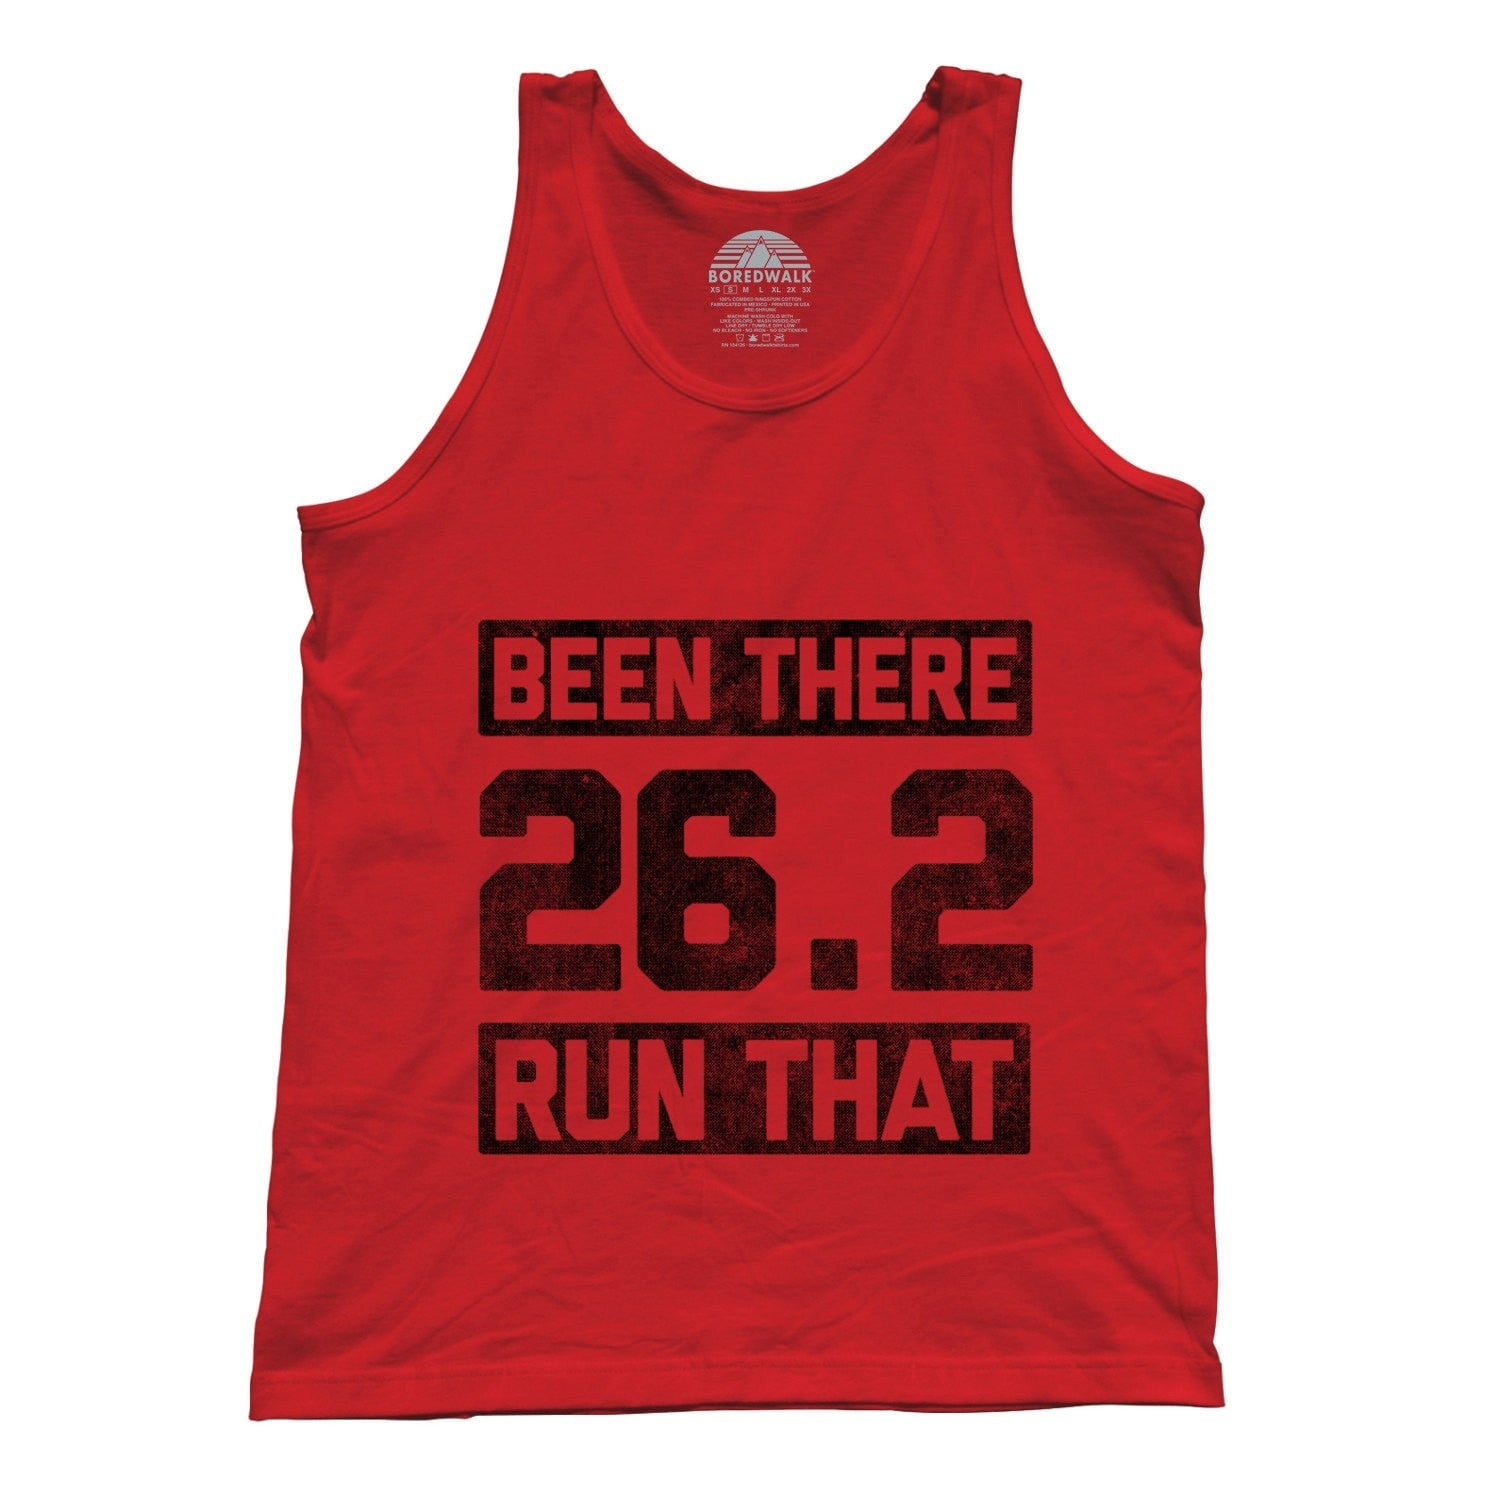 Unisex 26.2 Been There Run That Tank Top Marathon Runner